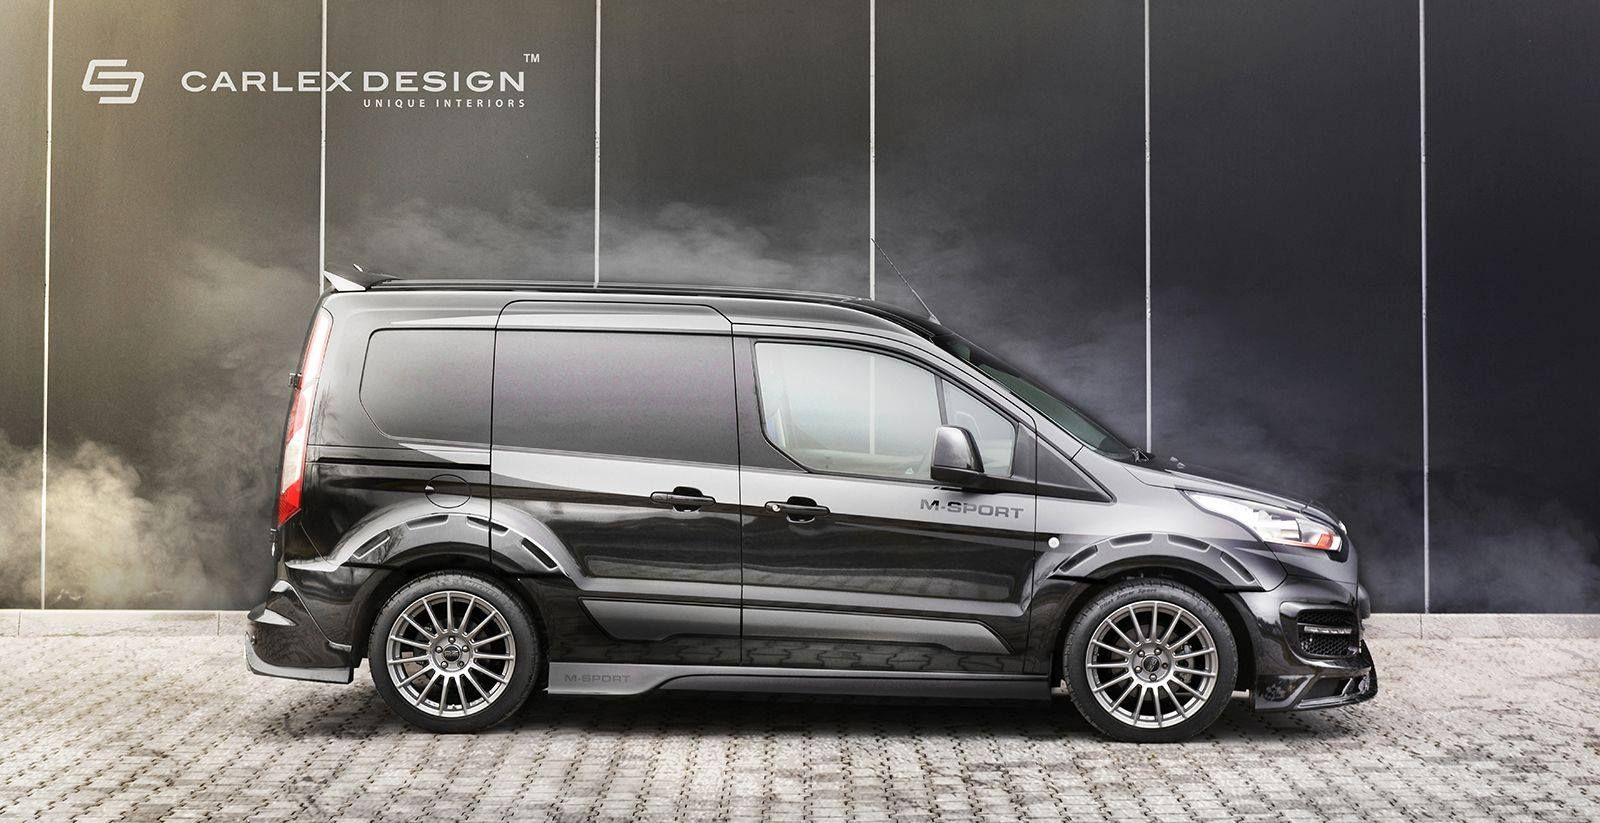 Pin By Dcaetano On Coches Ford Transit Transitional Decor